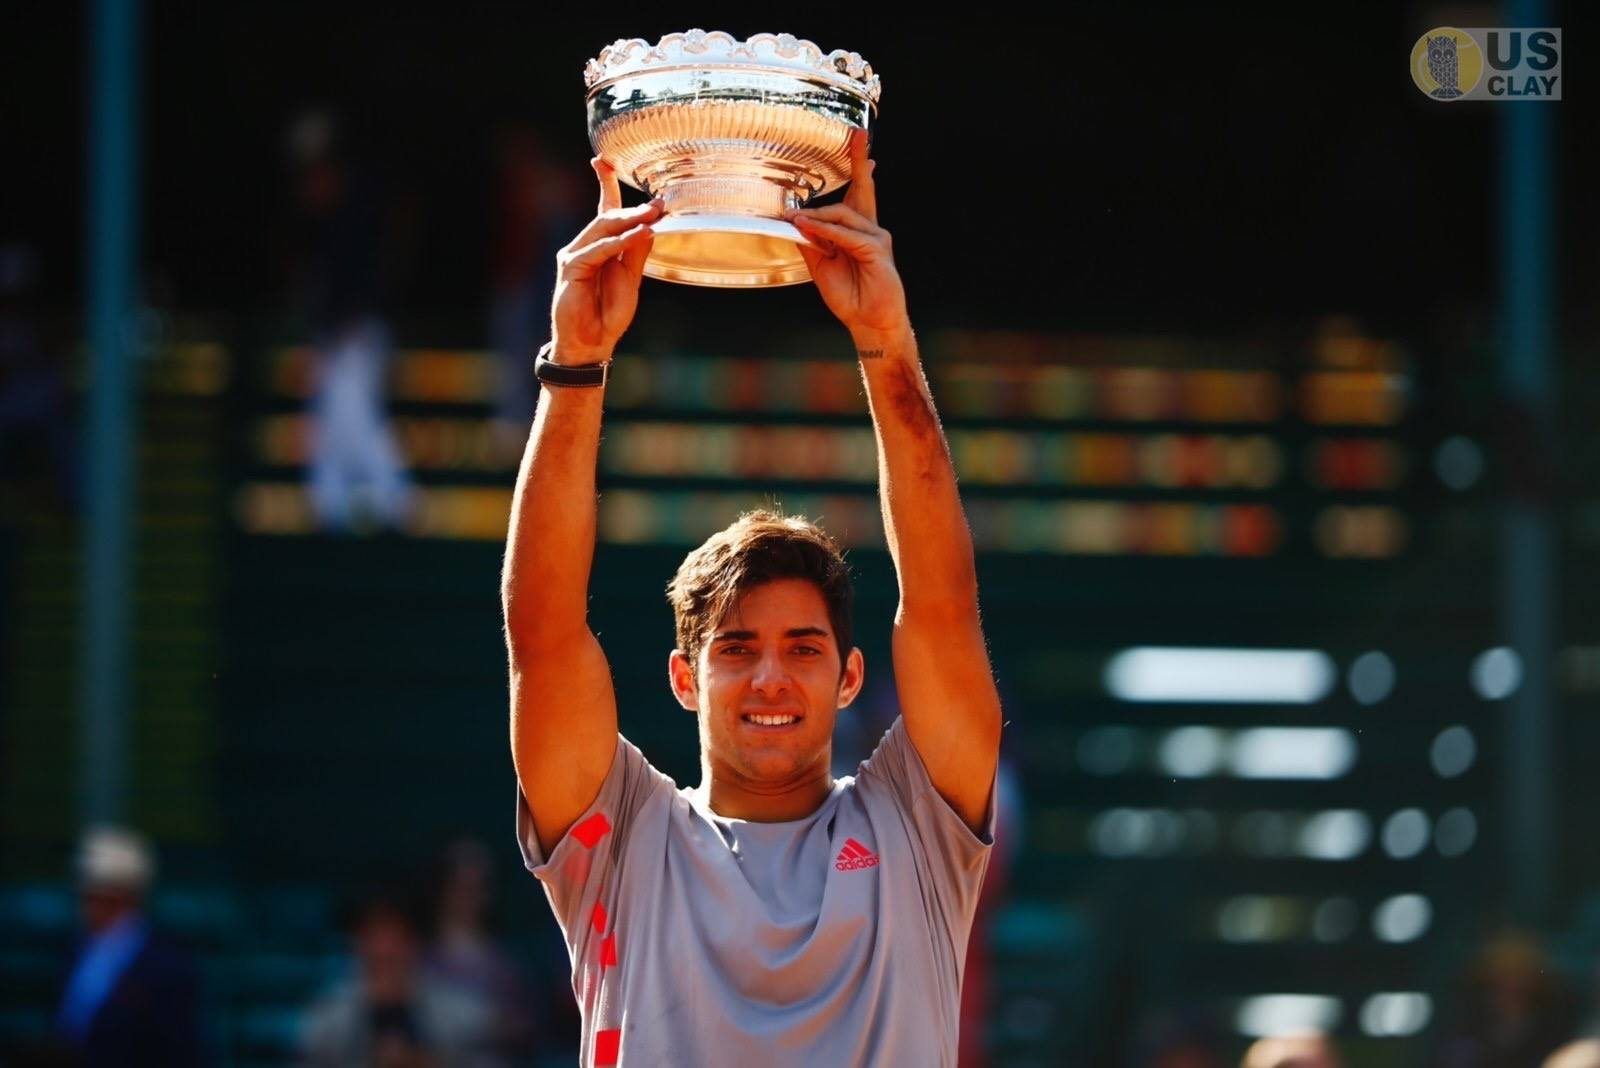 Chile's Christian Garin with the Championship trophy